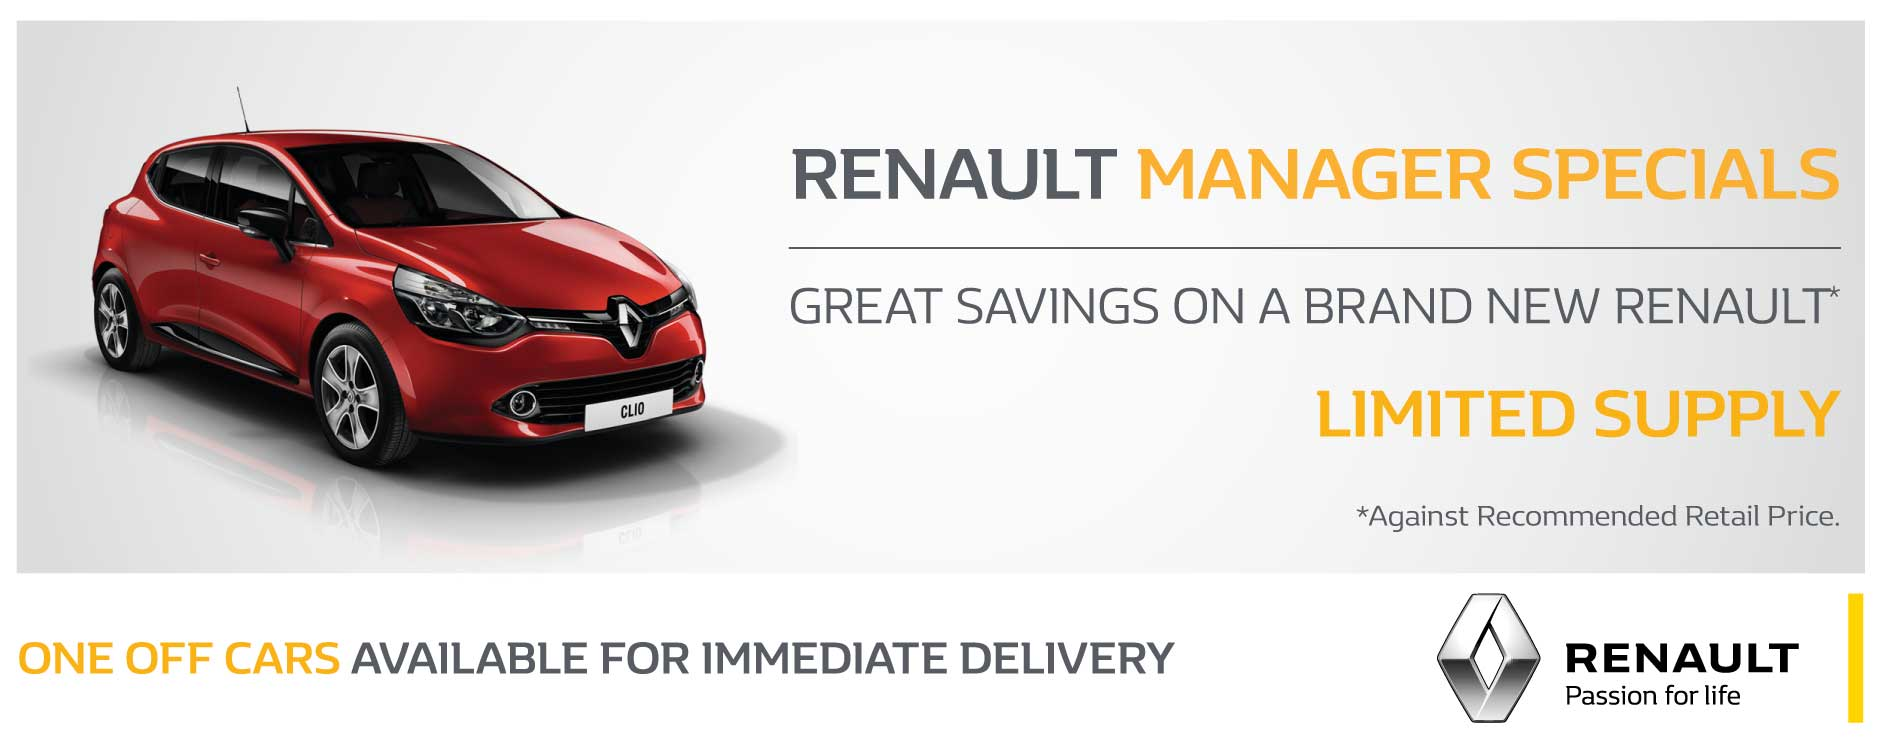 Renault Manager Specials